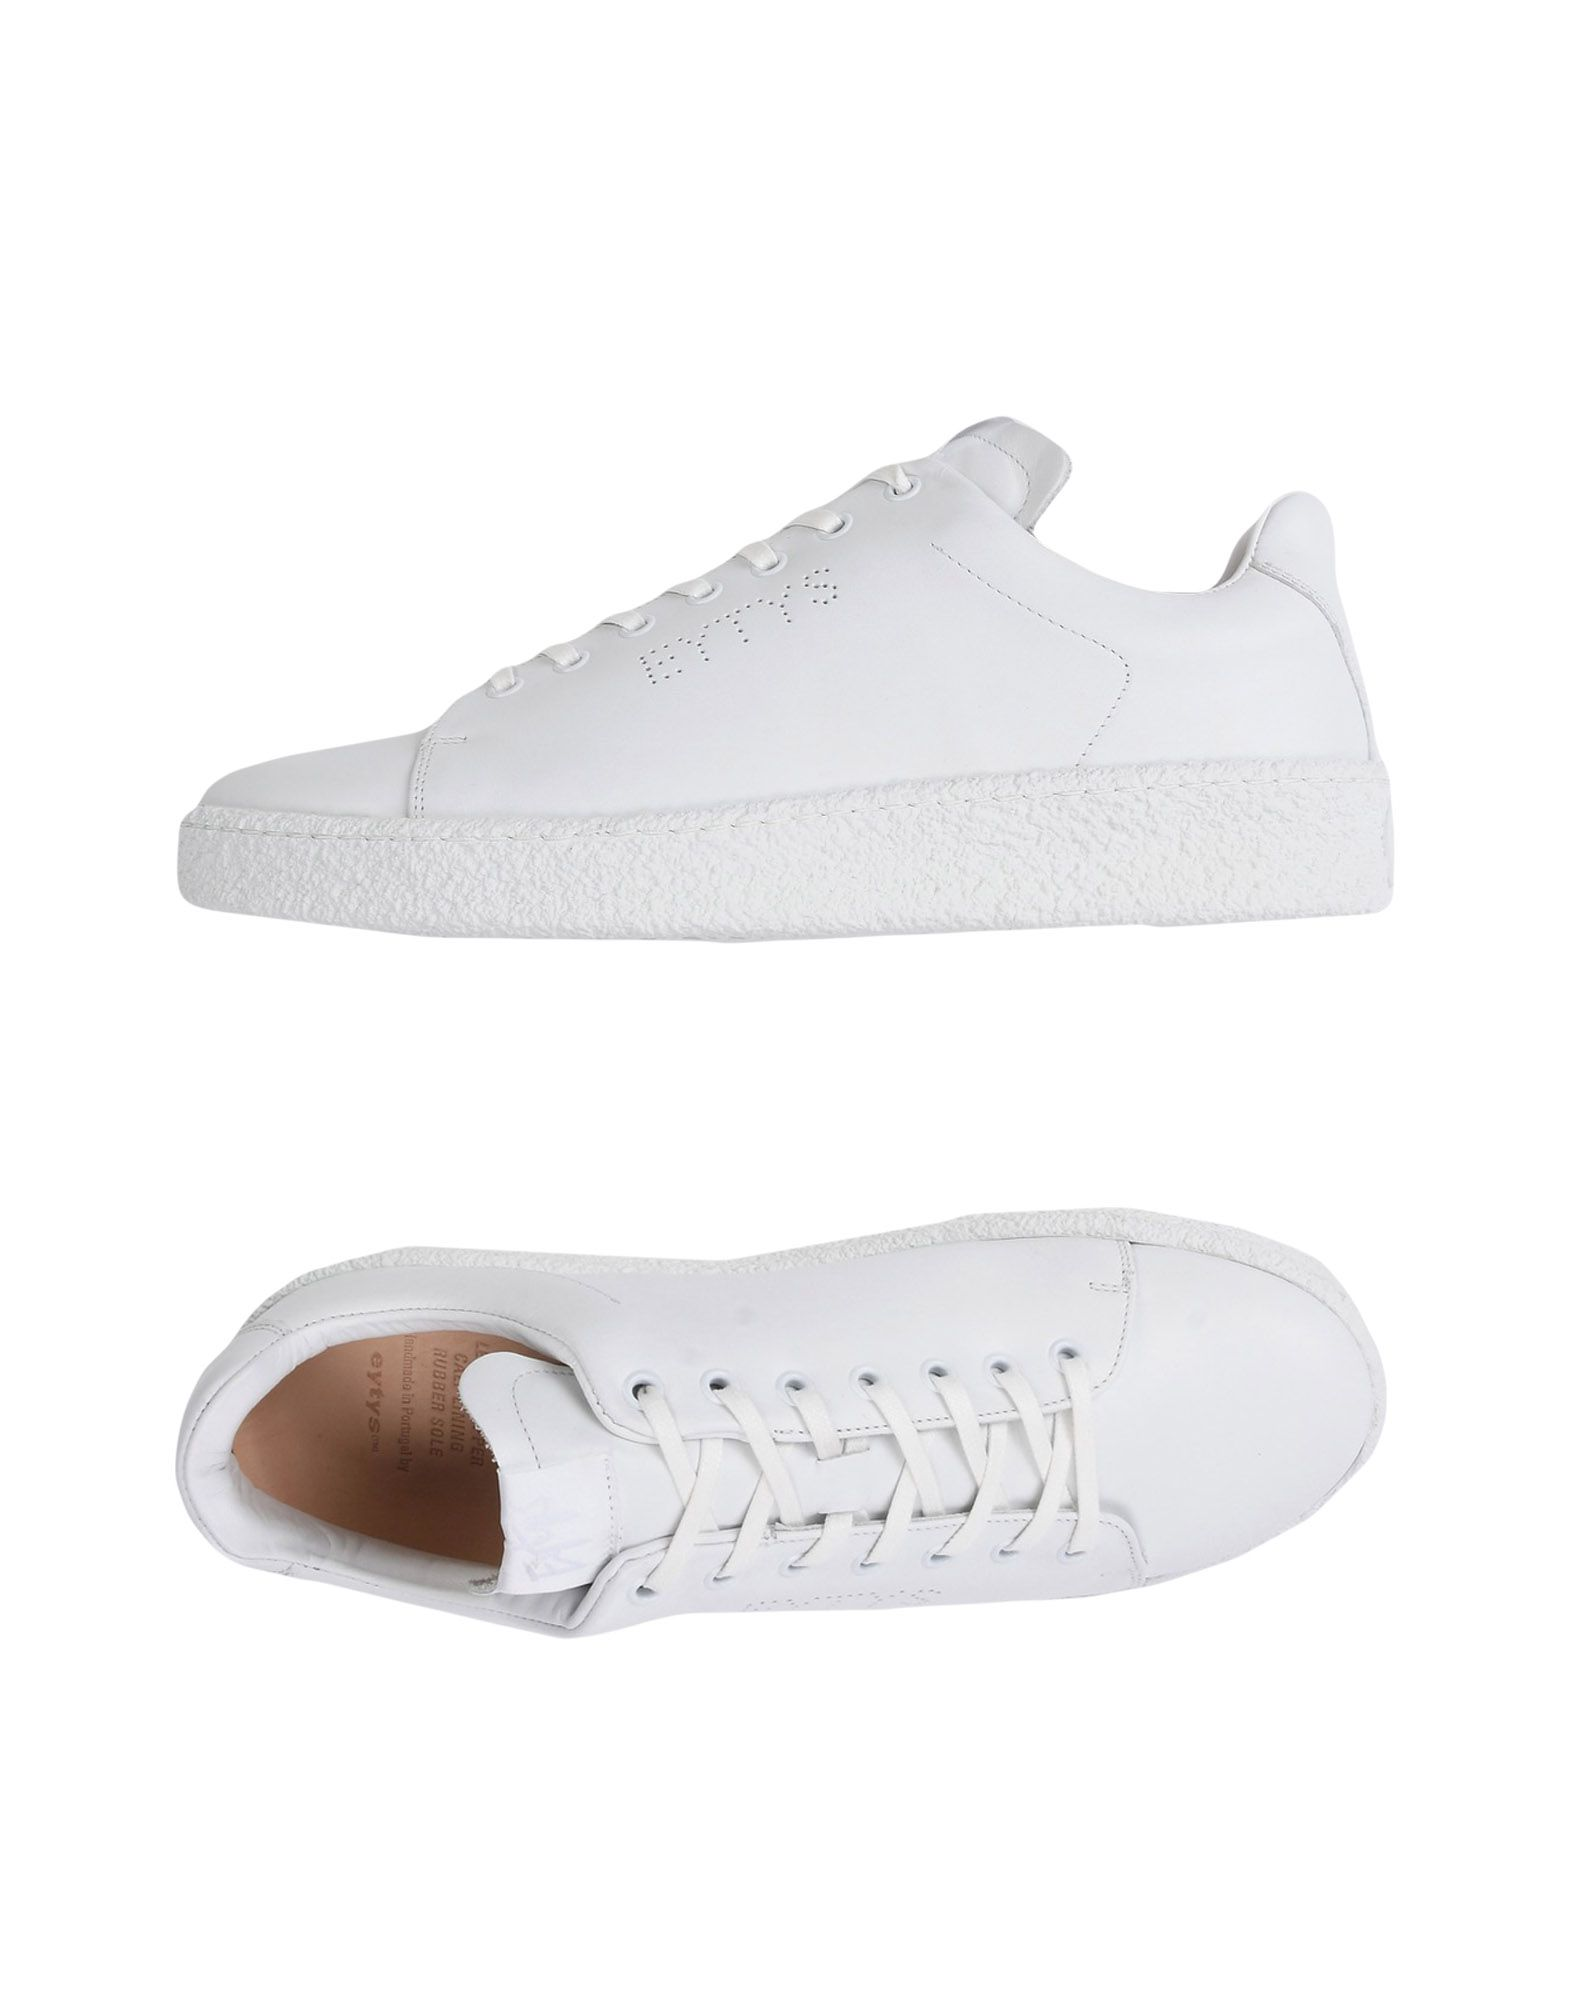 Sneakers Eytys Homme - Sneakers Eytys  Blanc Chaussures casual sauvages